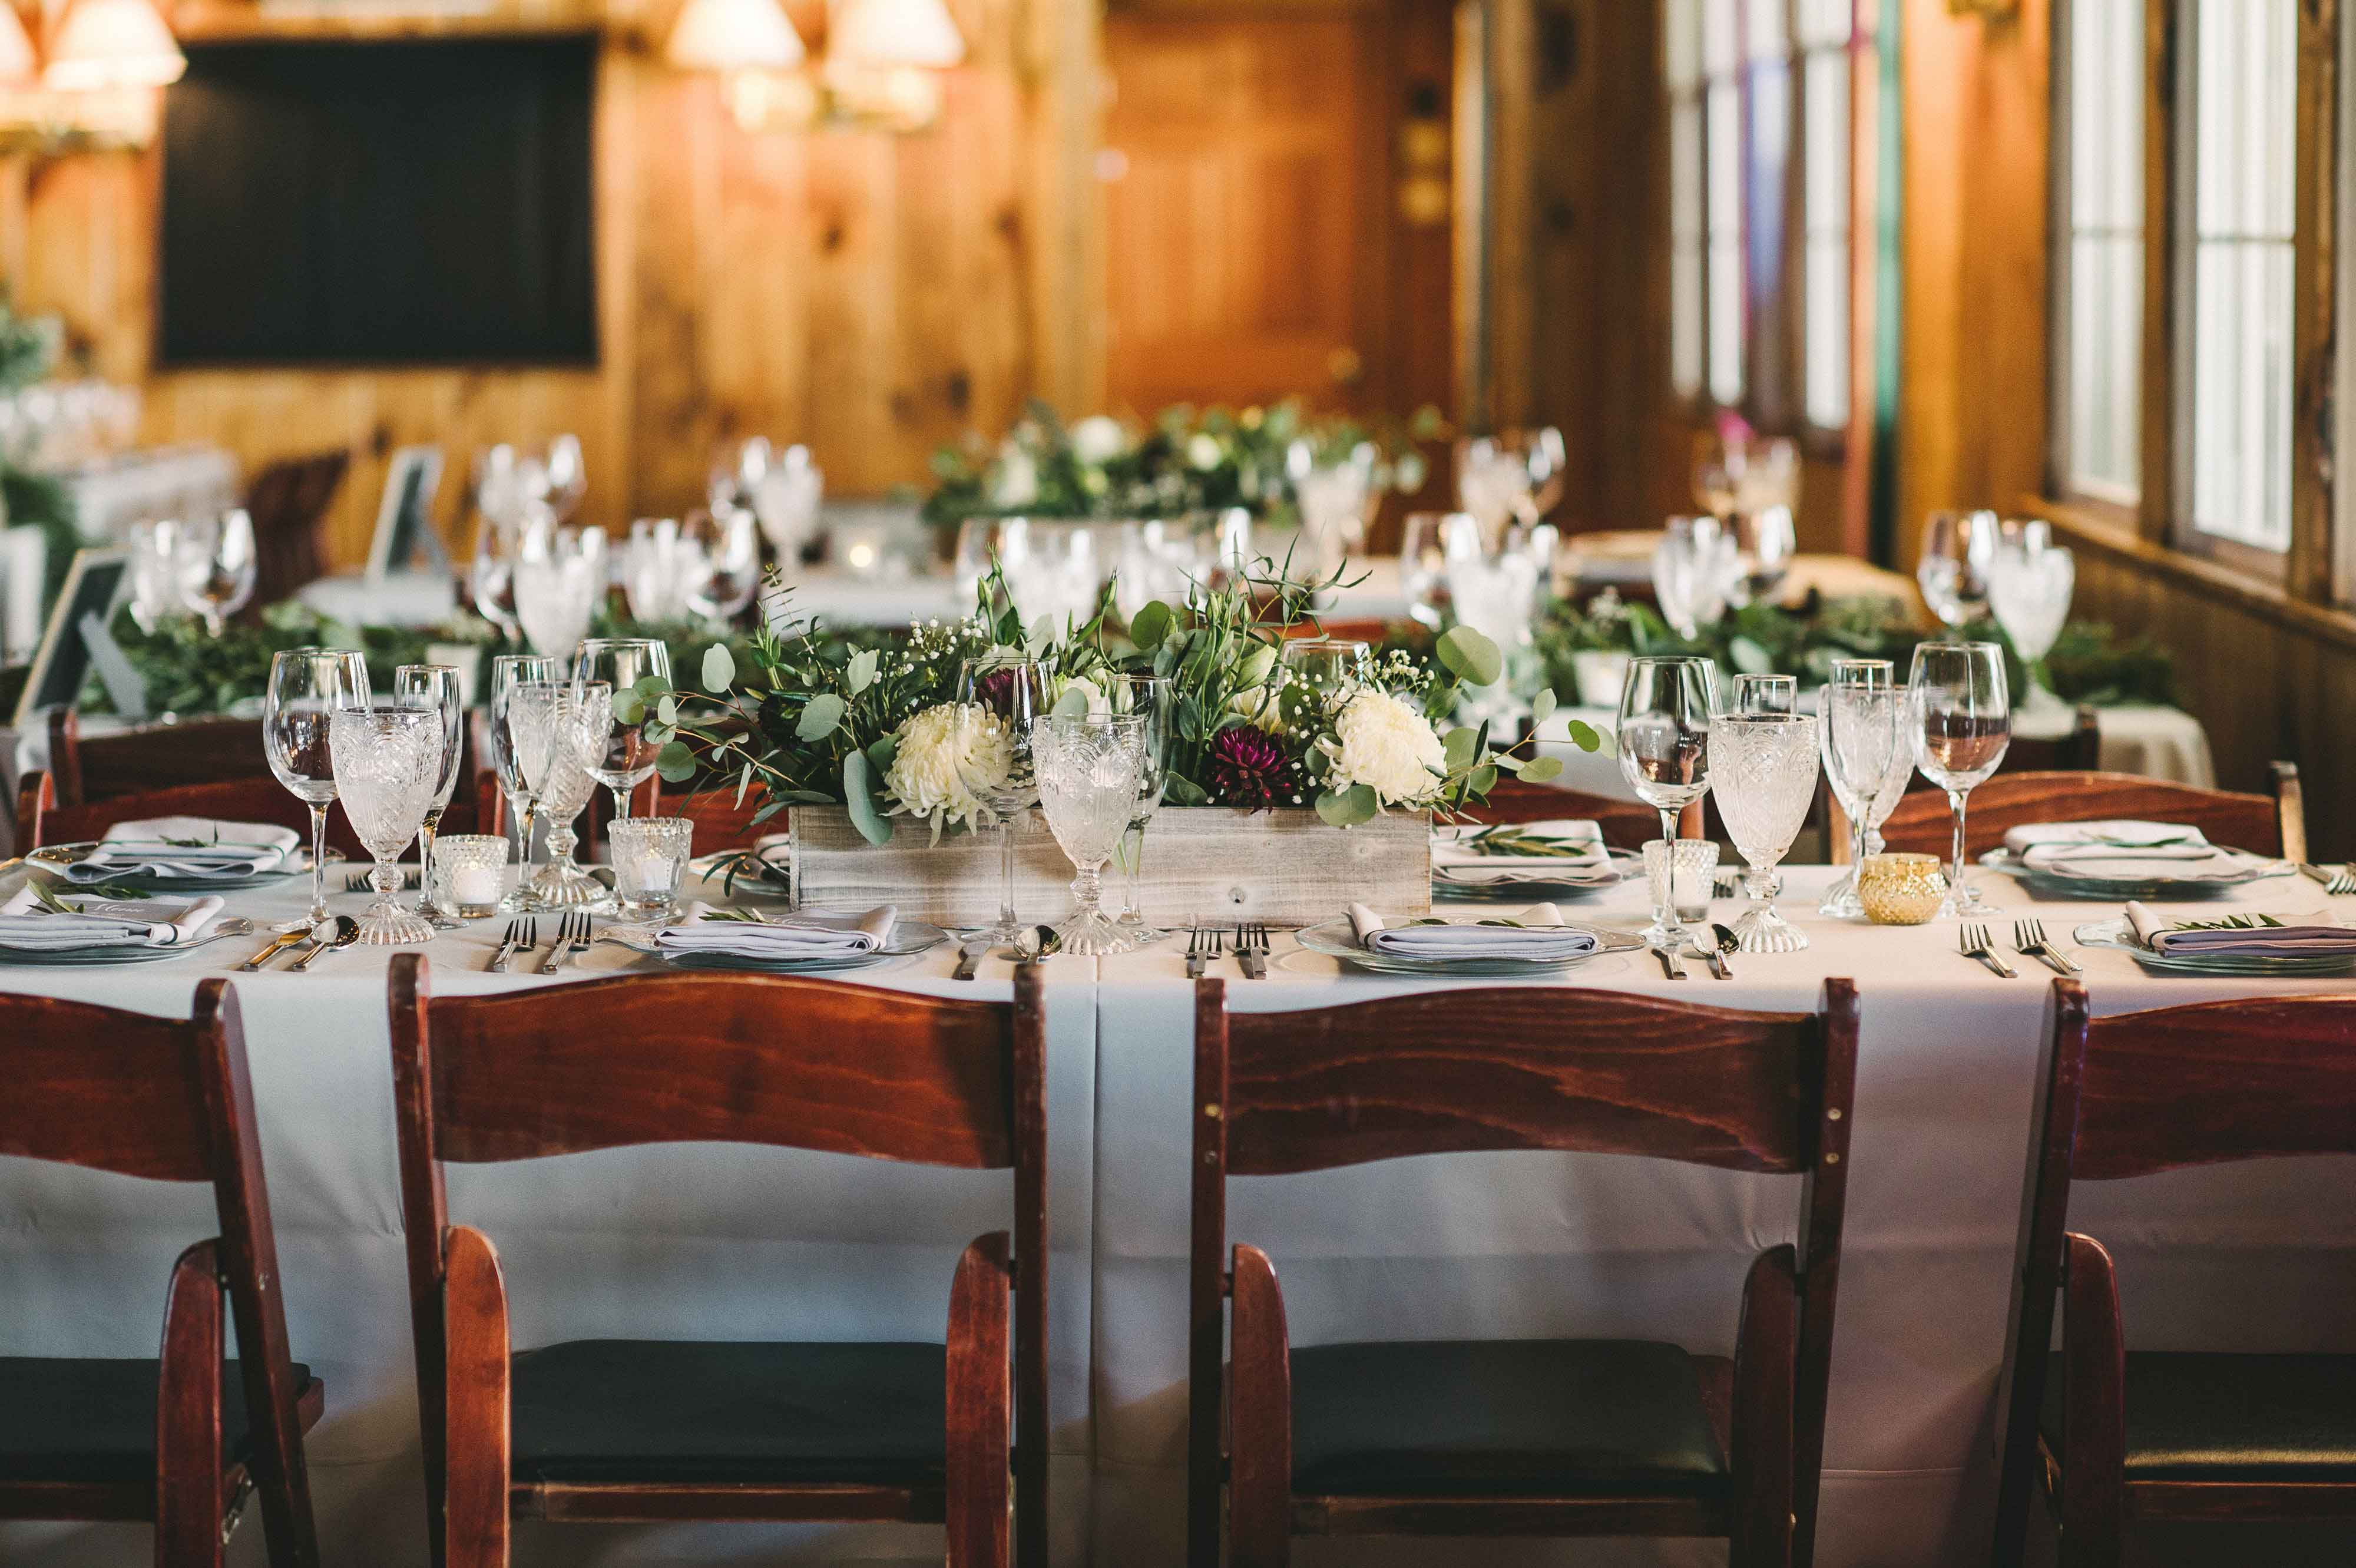 Rustic Seaside Wedding With Hunter Green Color Palette In Maine